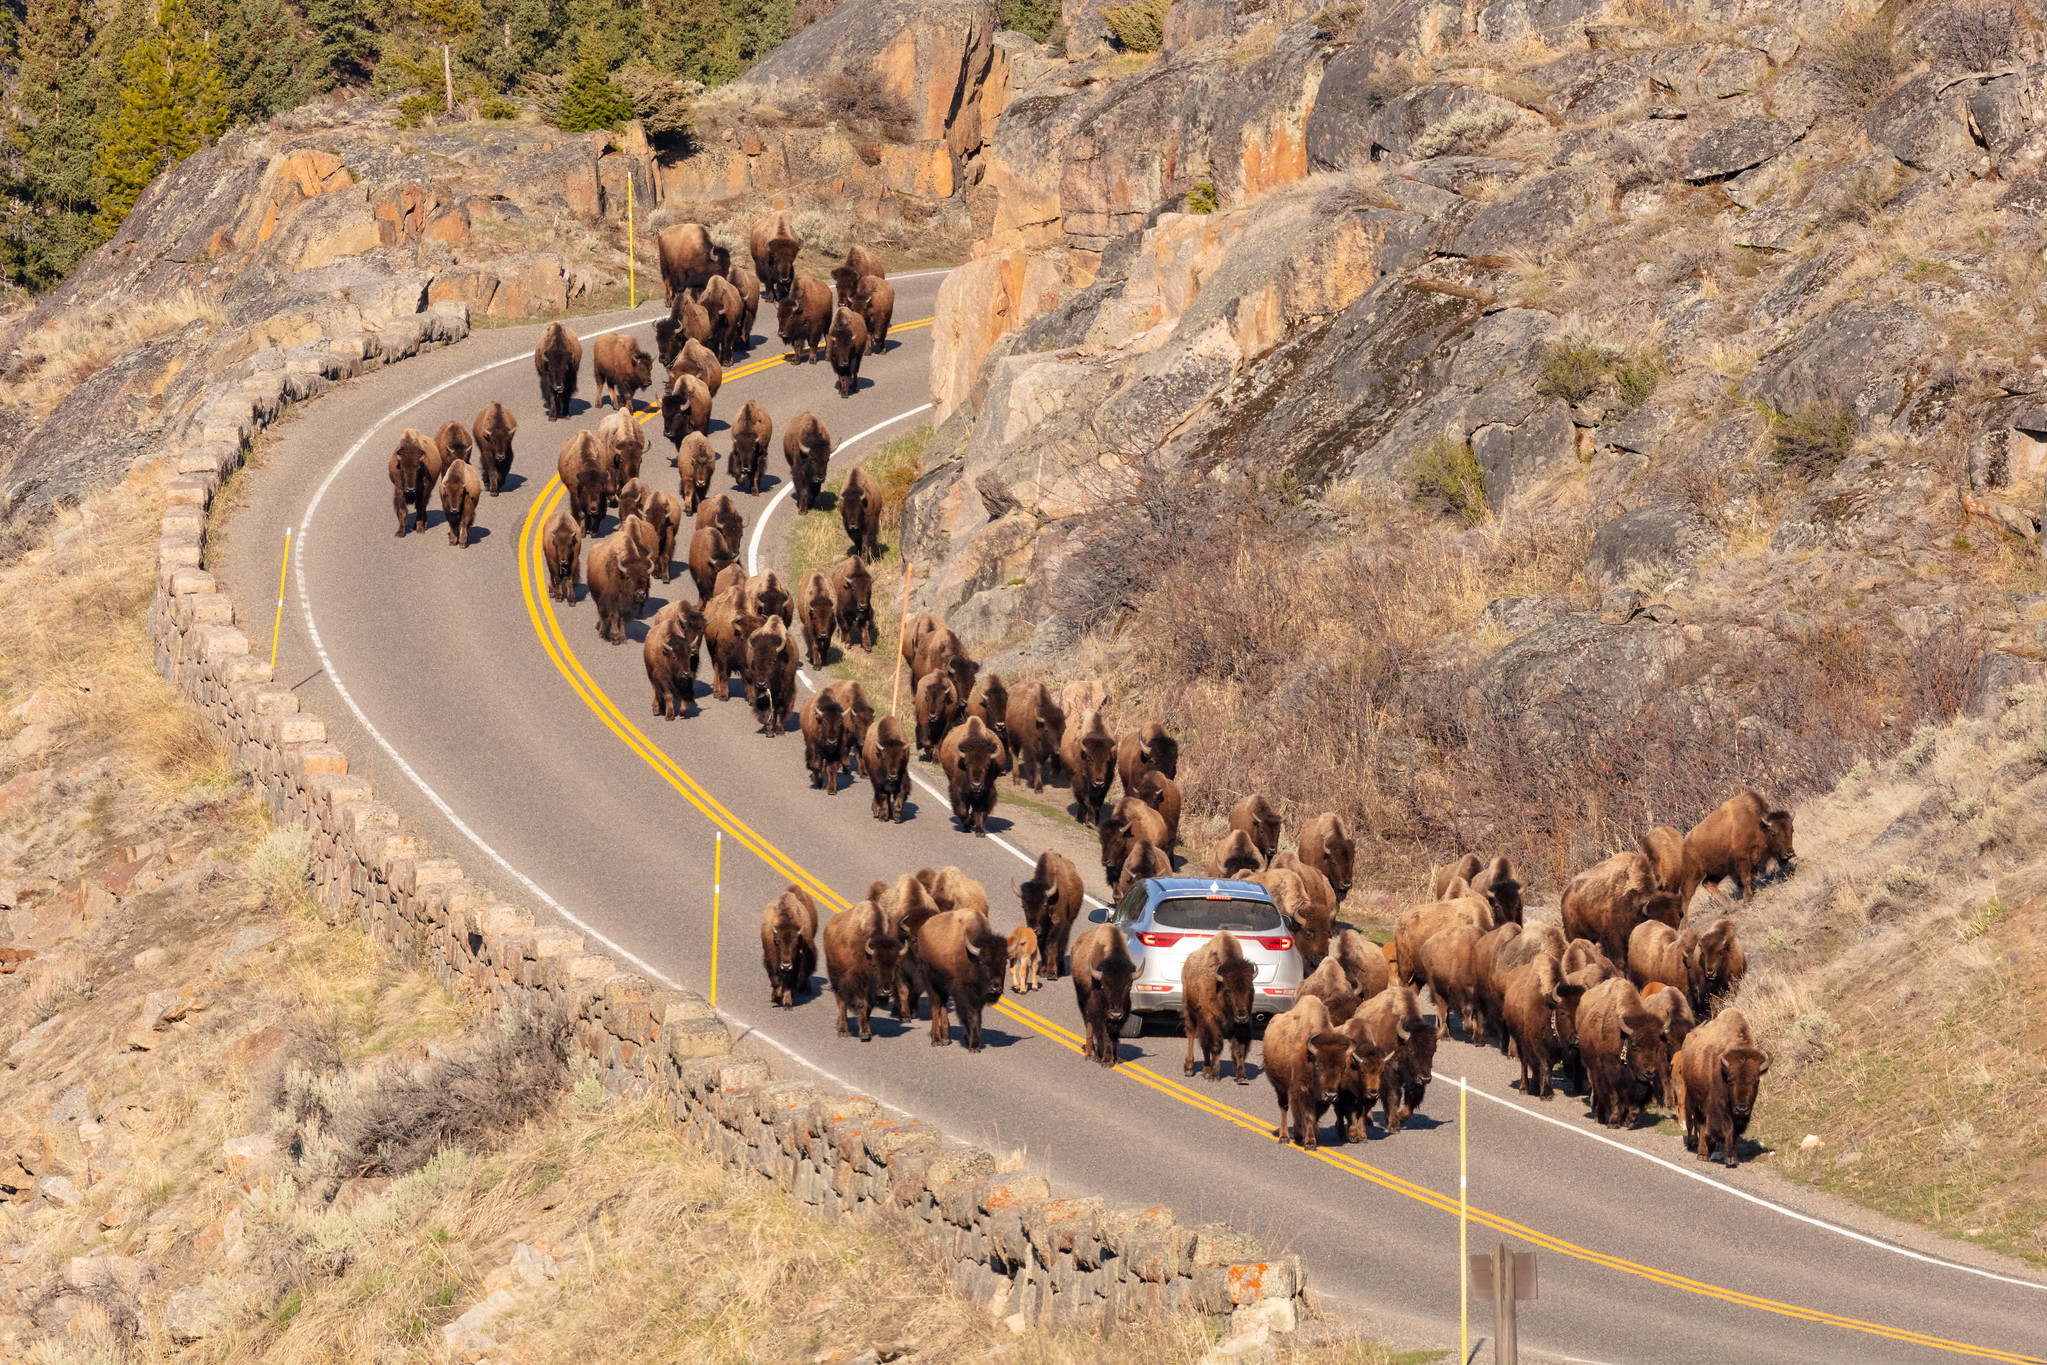 Free download high resolution image - free image free photo free stock image public domain picture -A group of bison surround a car